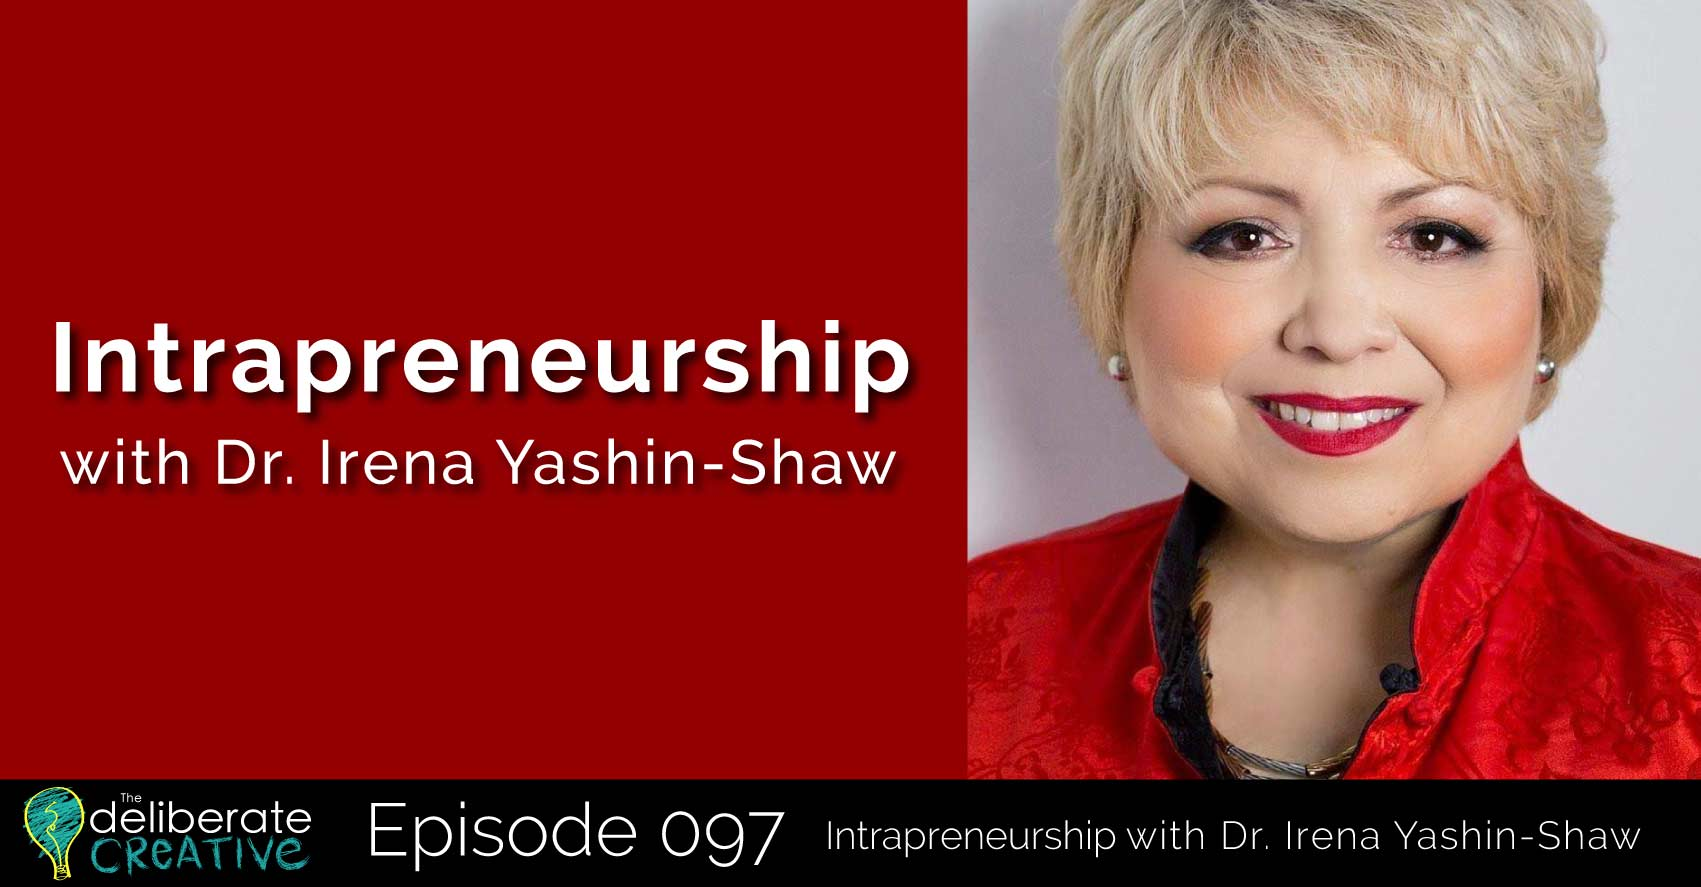 The Deliberate Creative Podcast: Intrapreneurship with Dr. Irena Yashin-Shaw